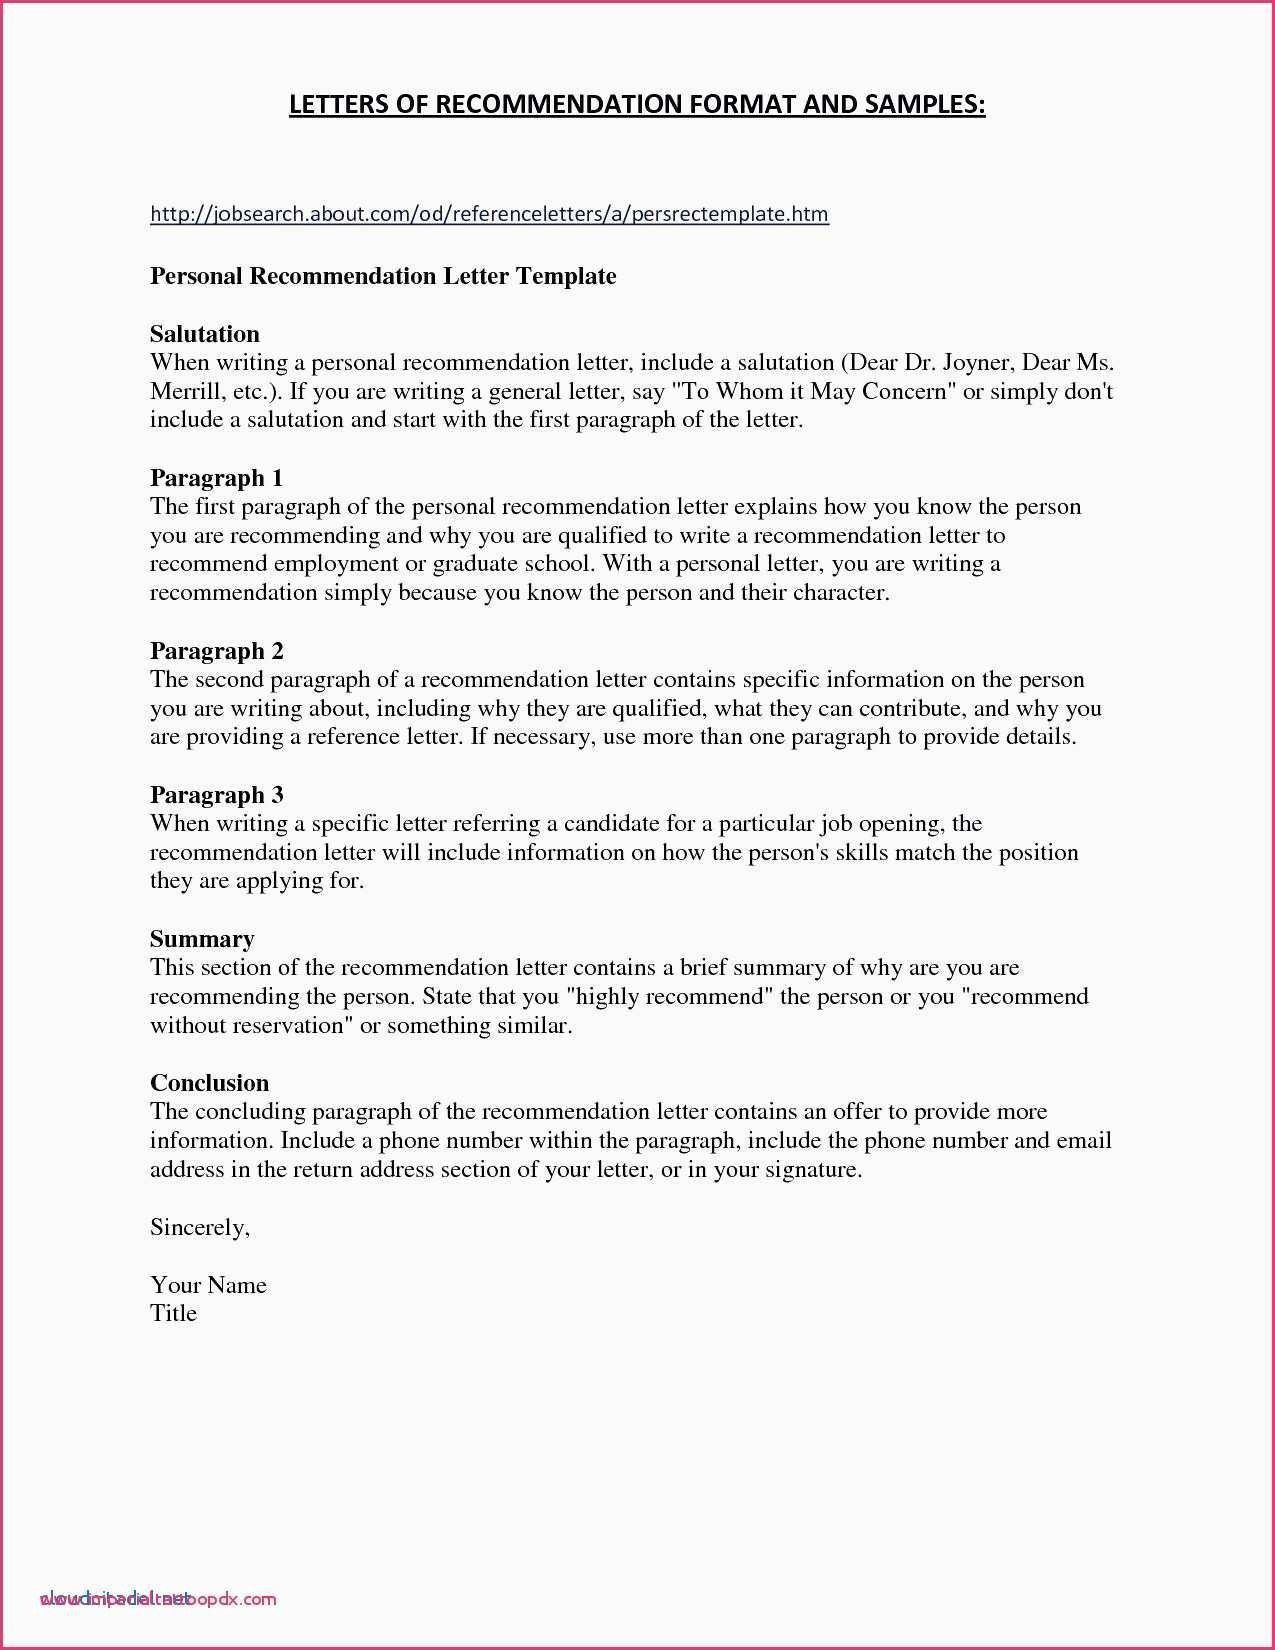 new professional business letter email format quality control analyst resume sample product owner examples rn 1 year experience